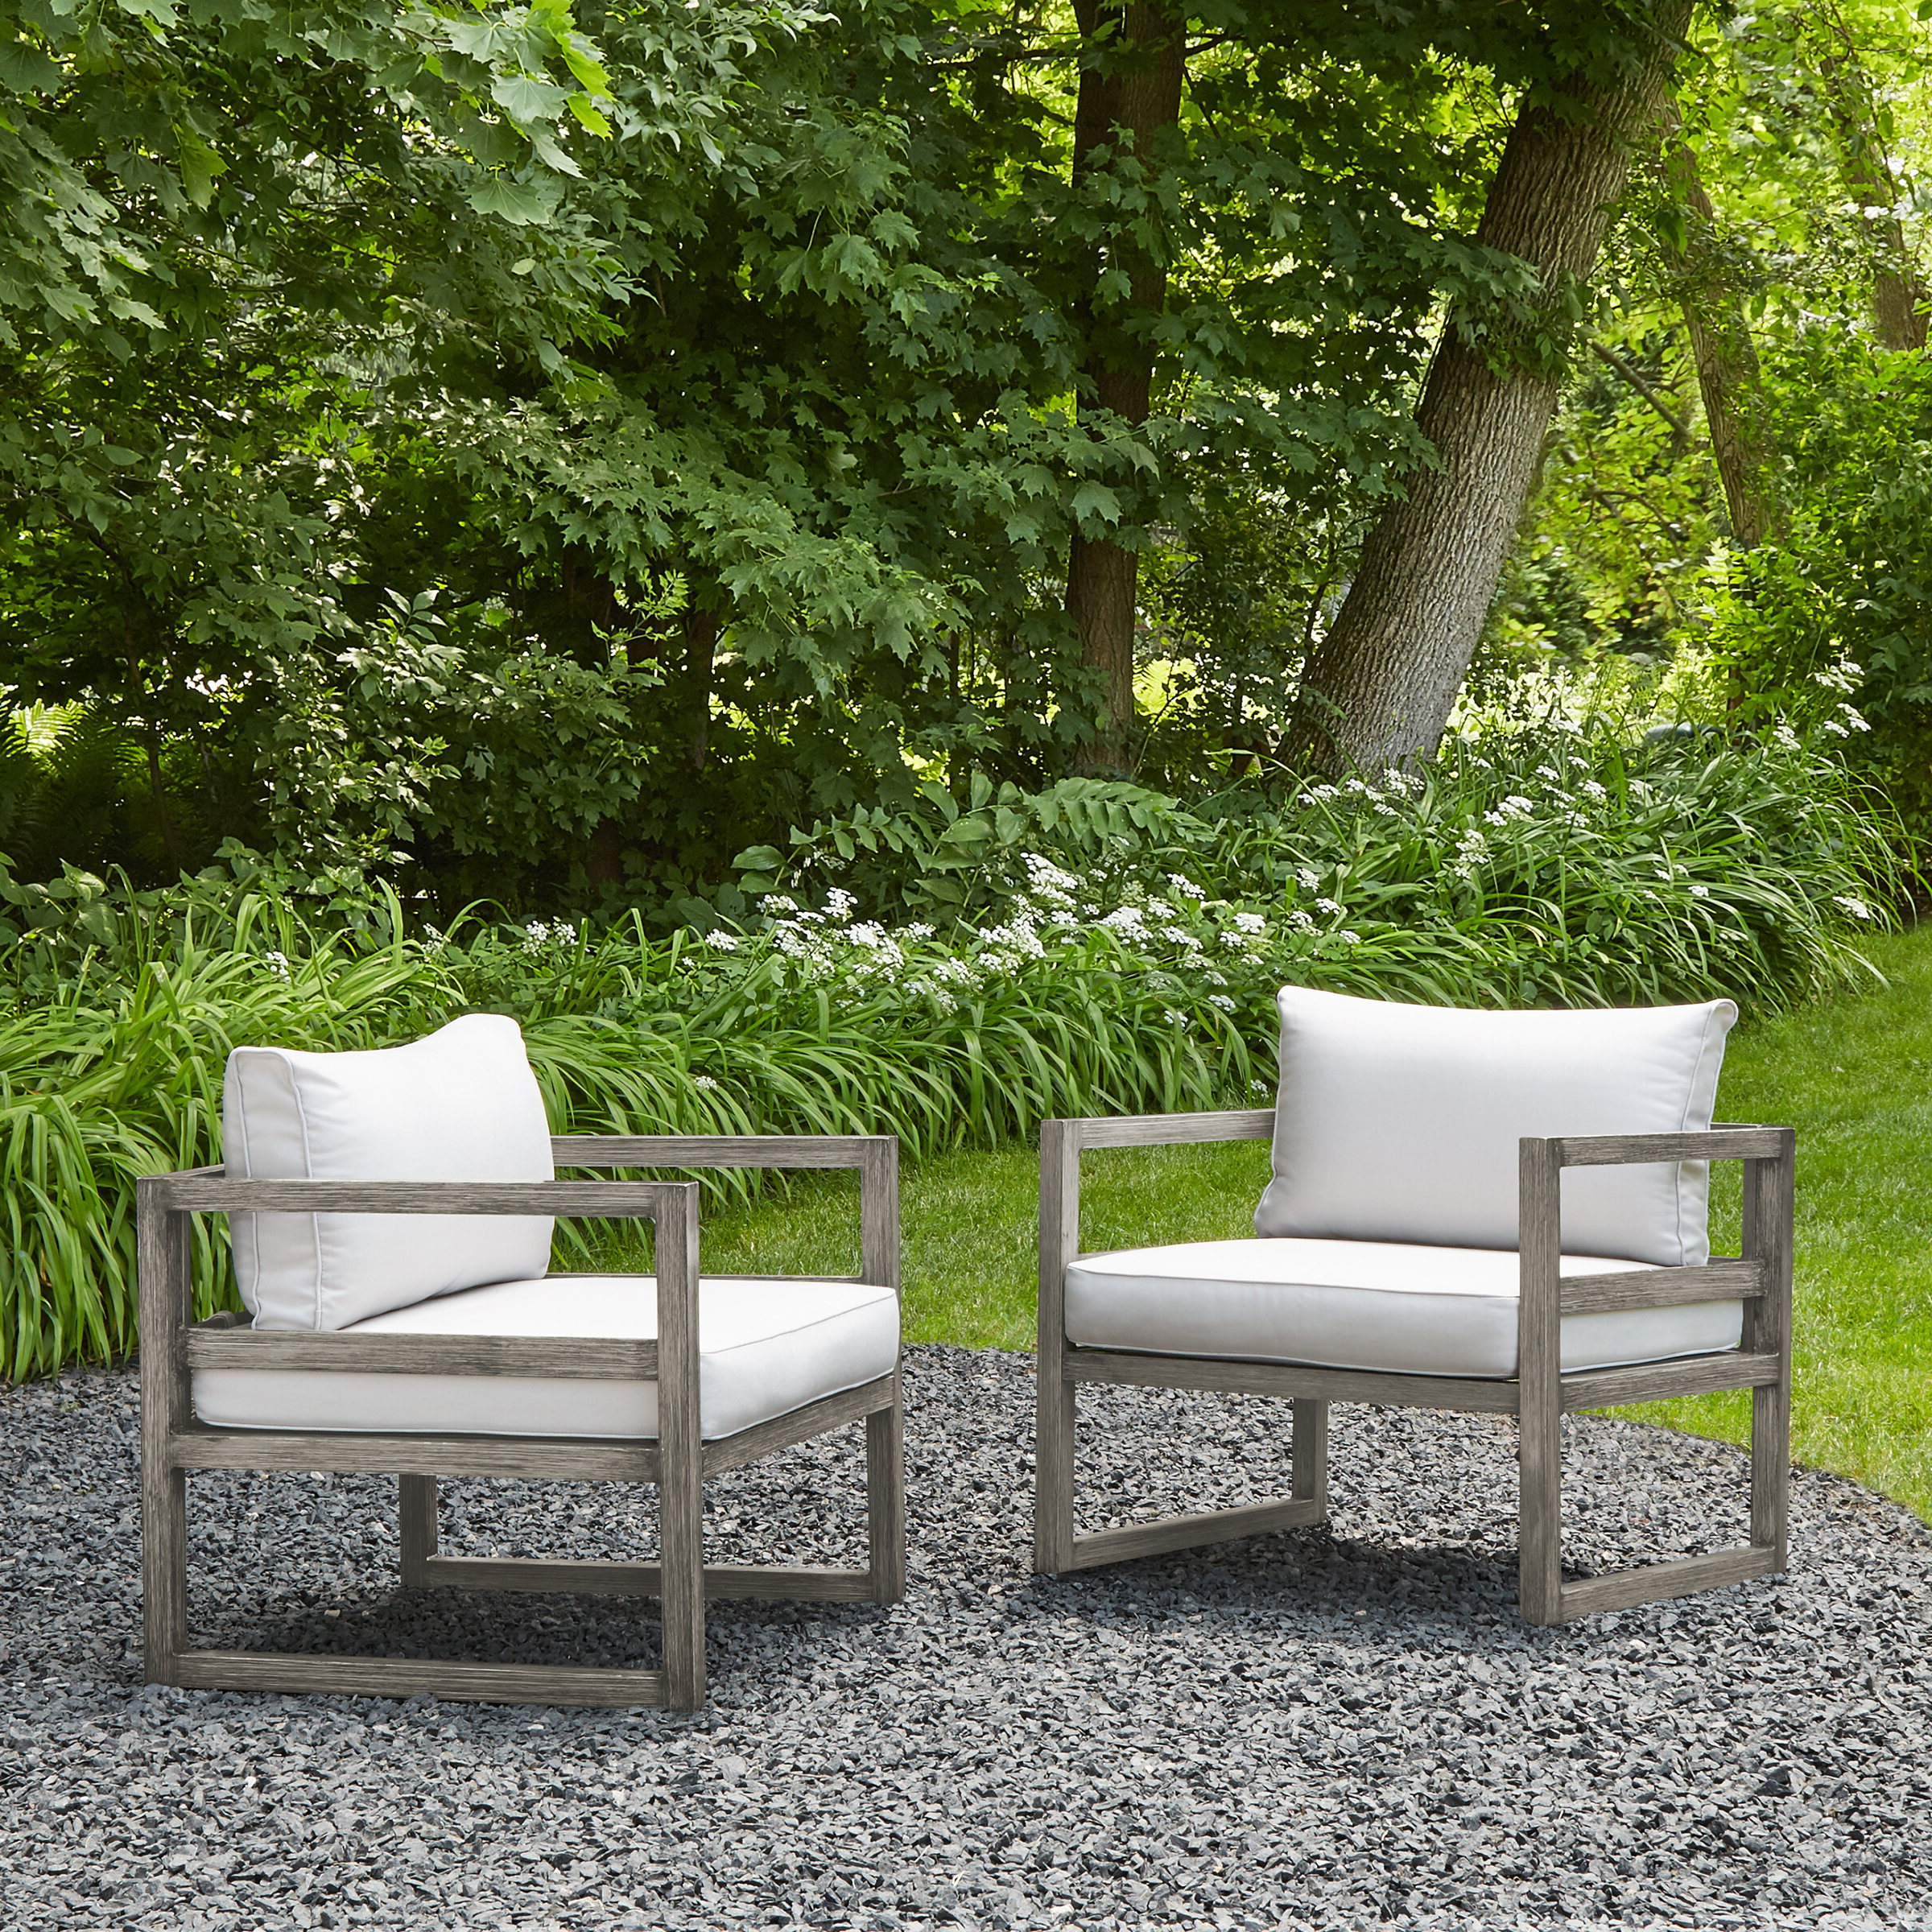 Famous Rossville Outdoor Patio Sofas With Cushions In Monaco Patio Chair With Cushion (View 16 of 25)